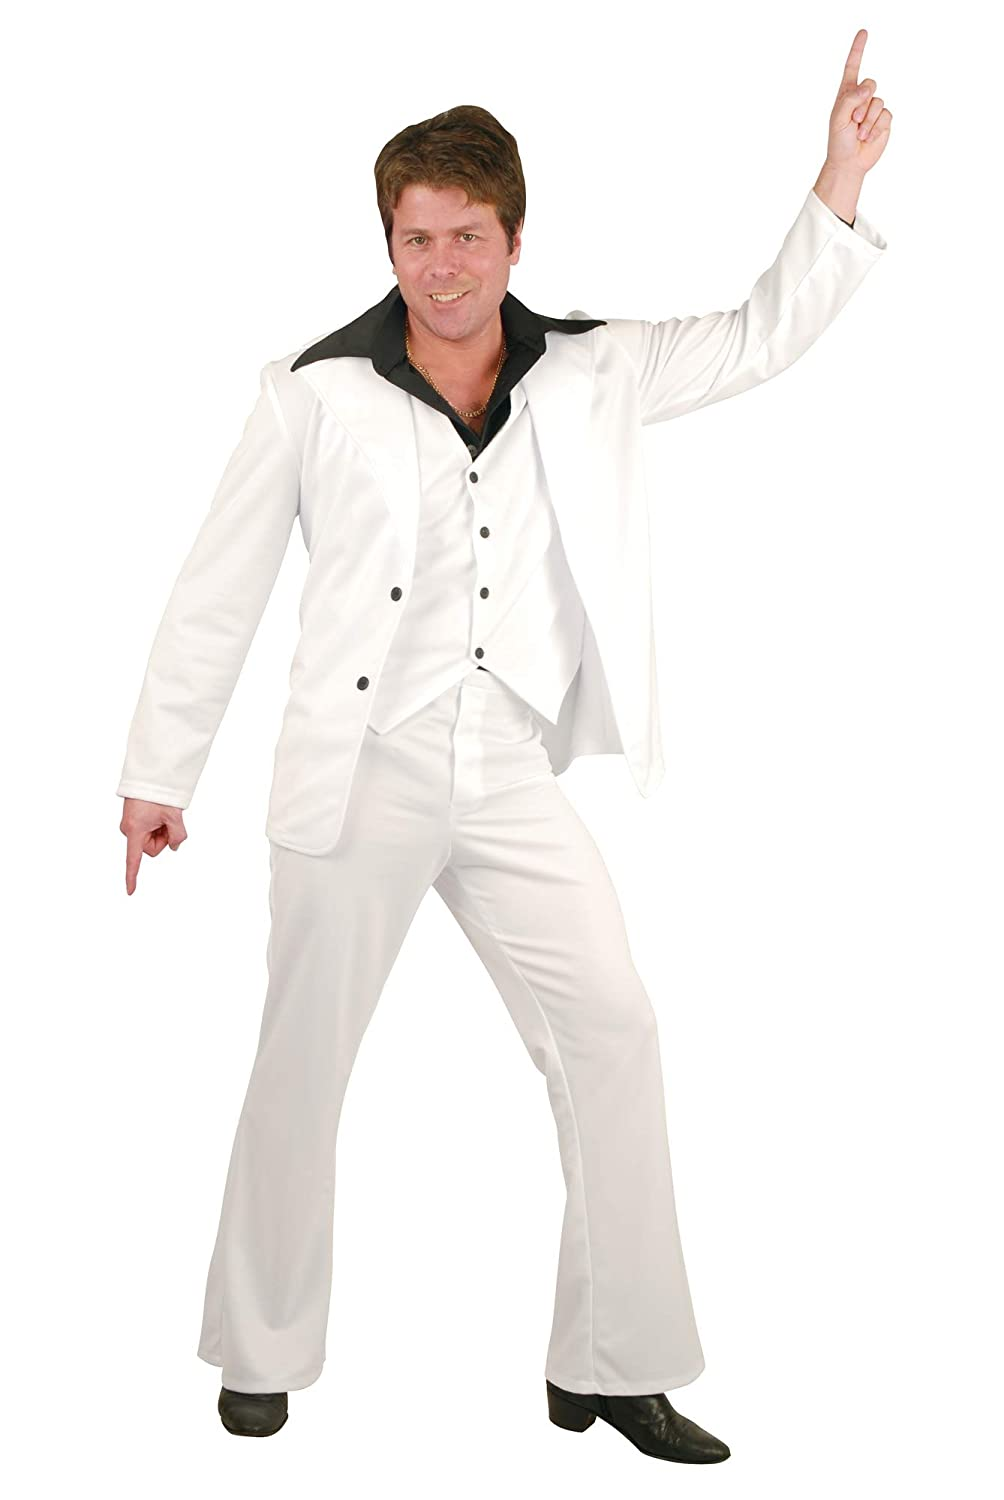 1970s Men's Suits History | Sport Coats & Tuxedos Charades Mens Disco Fever Suit $51.64 AT vintagedancer.com